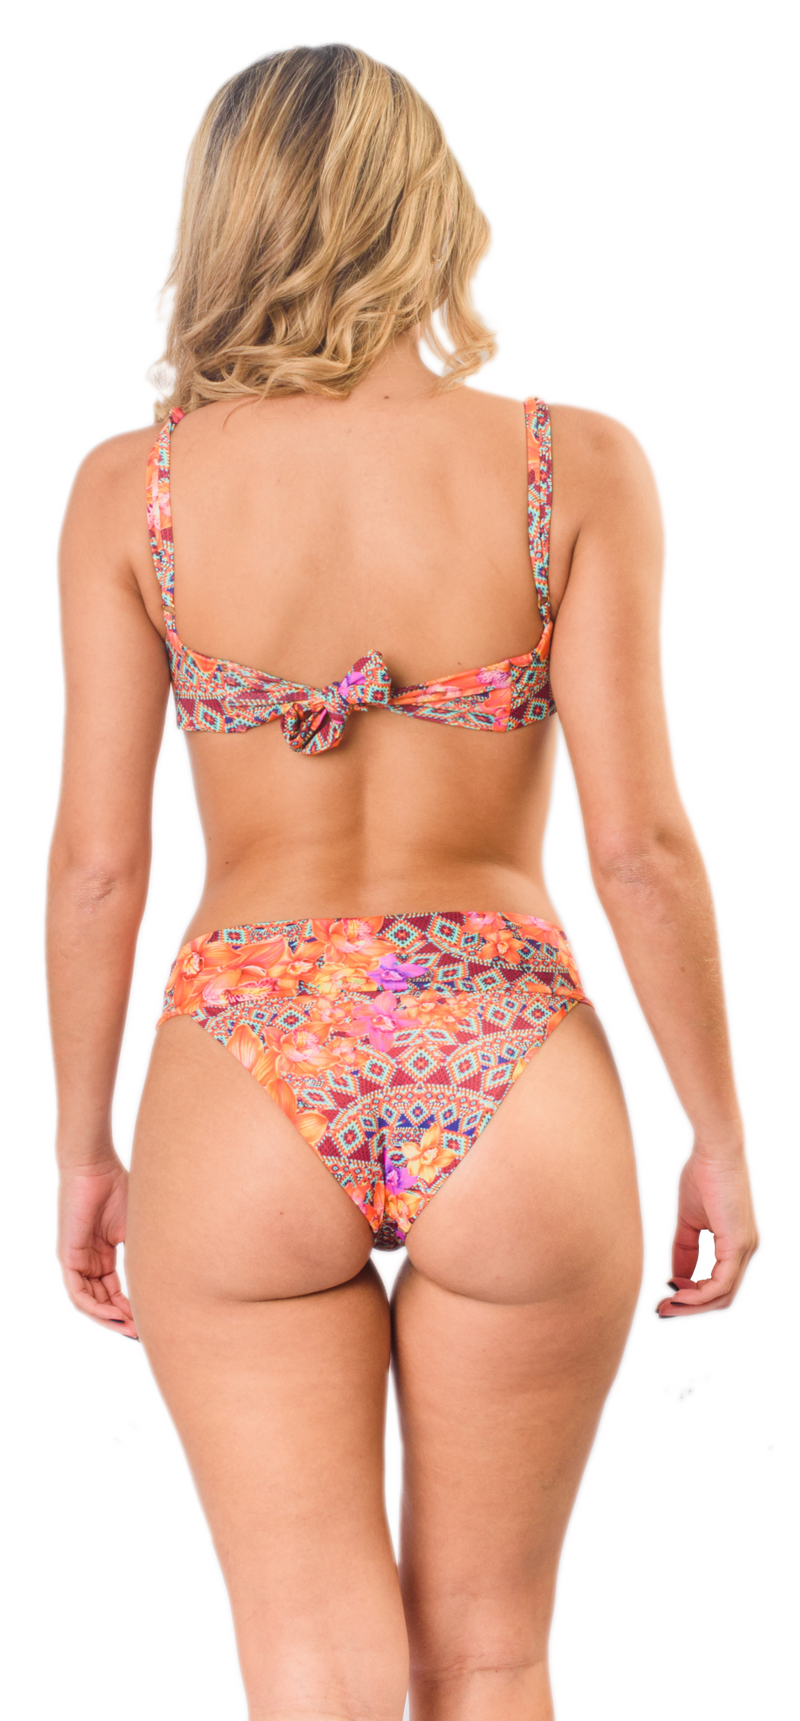 BIKINI SET High Waist Embera